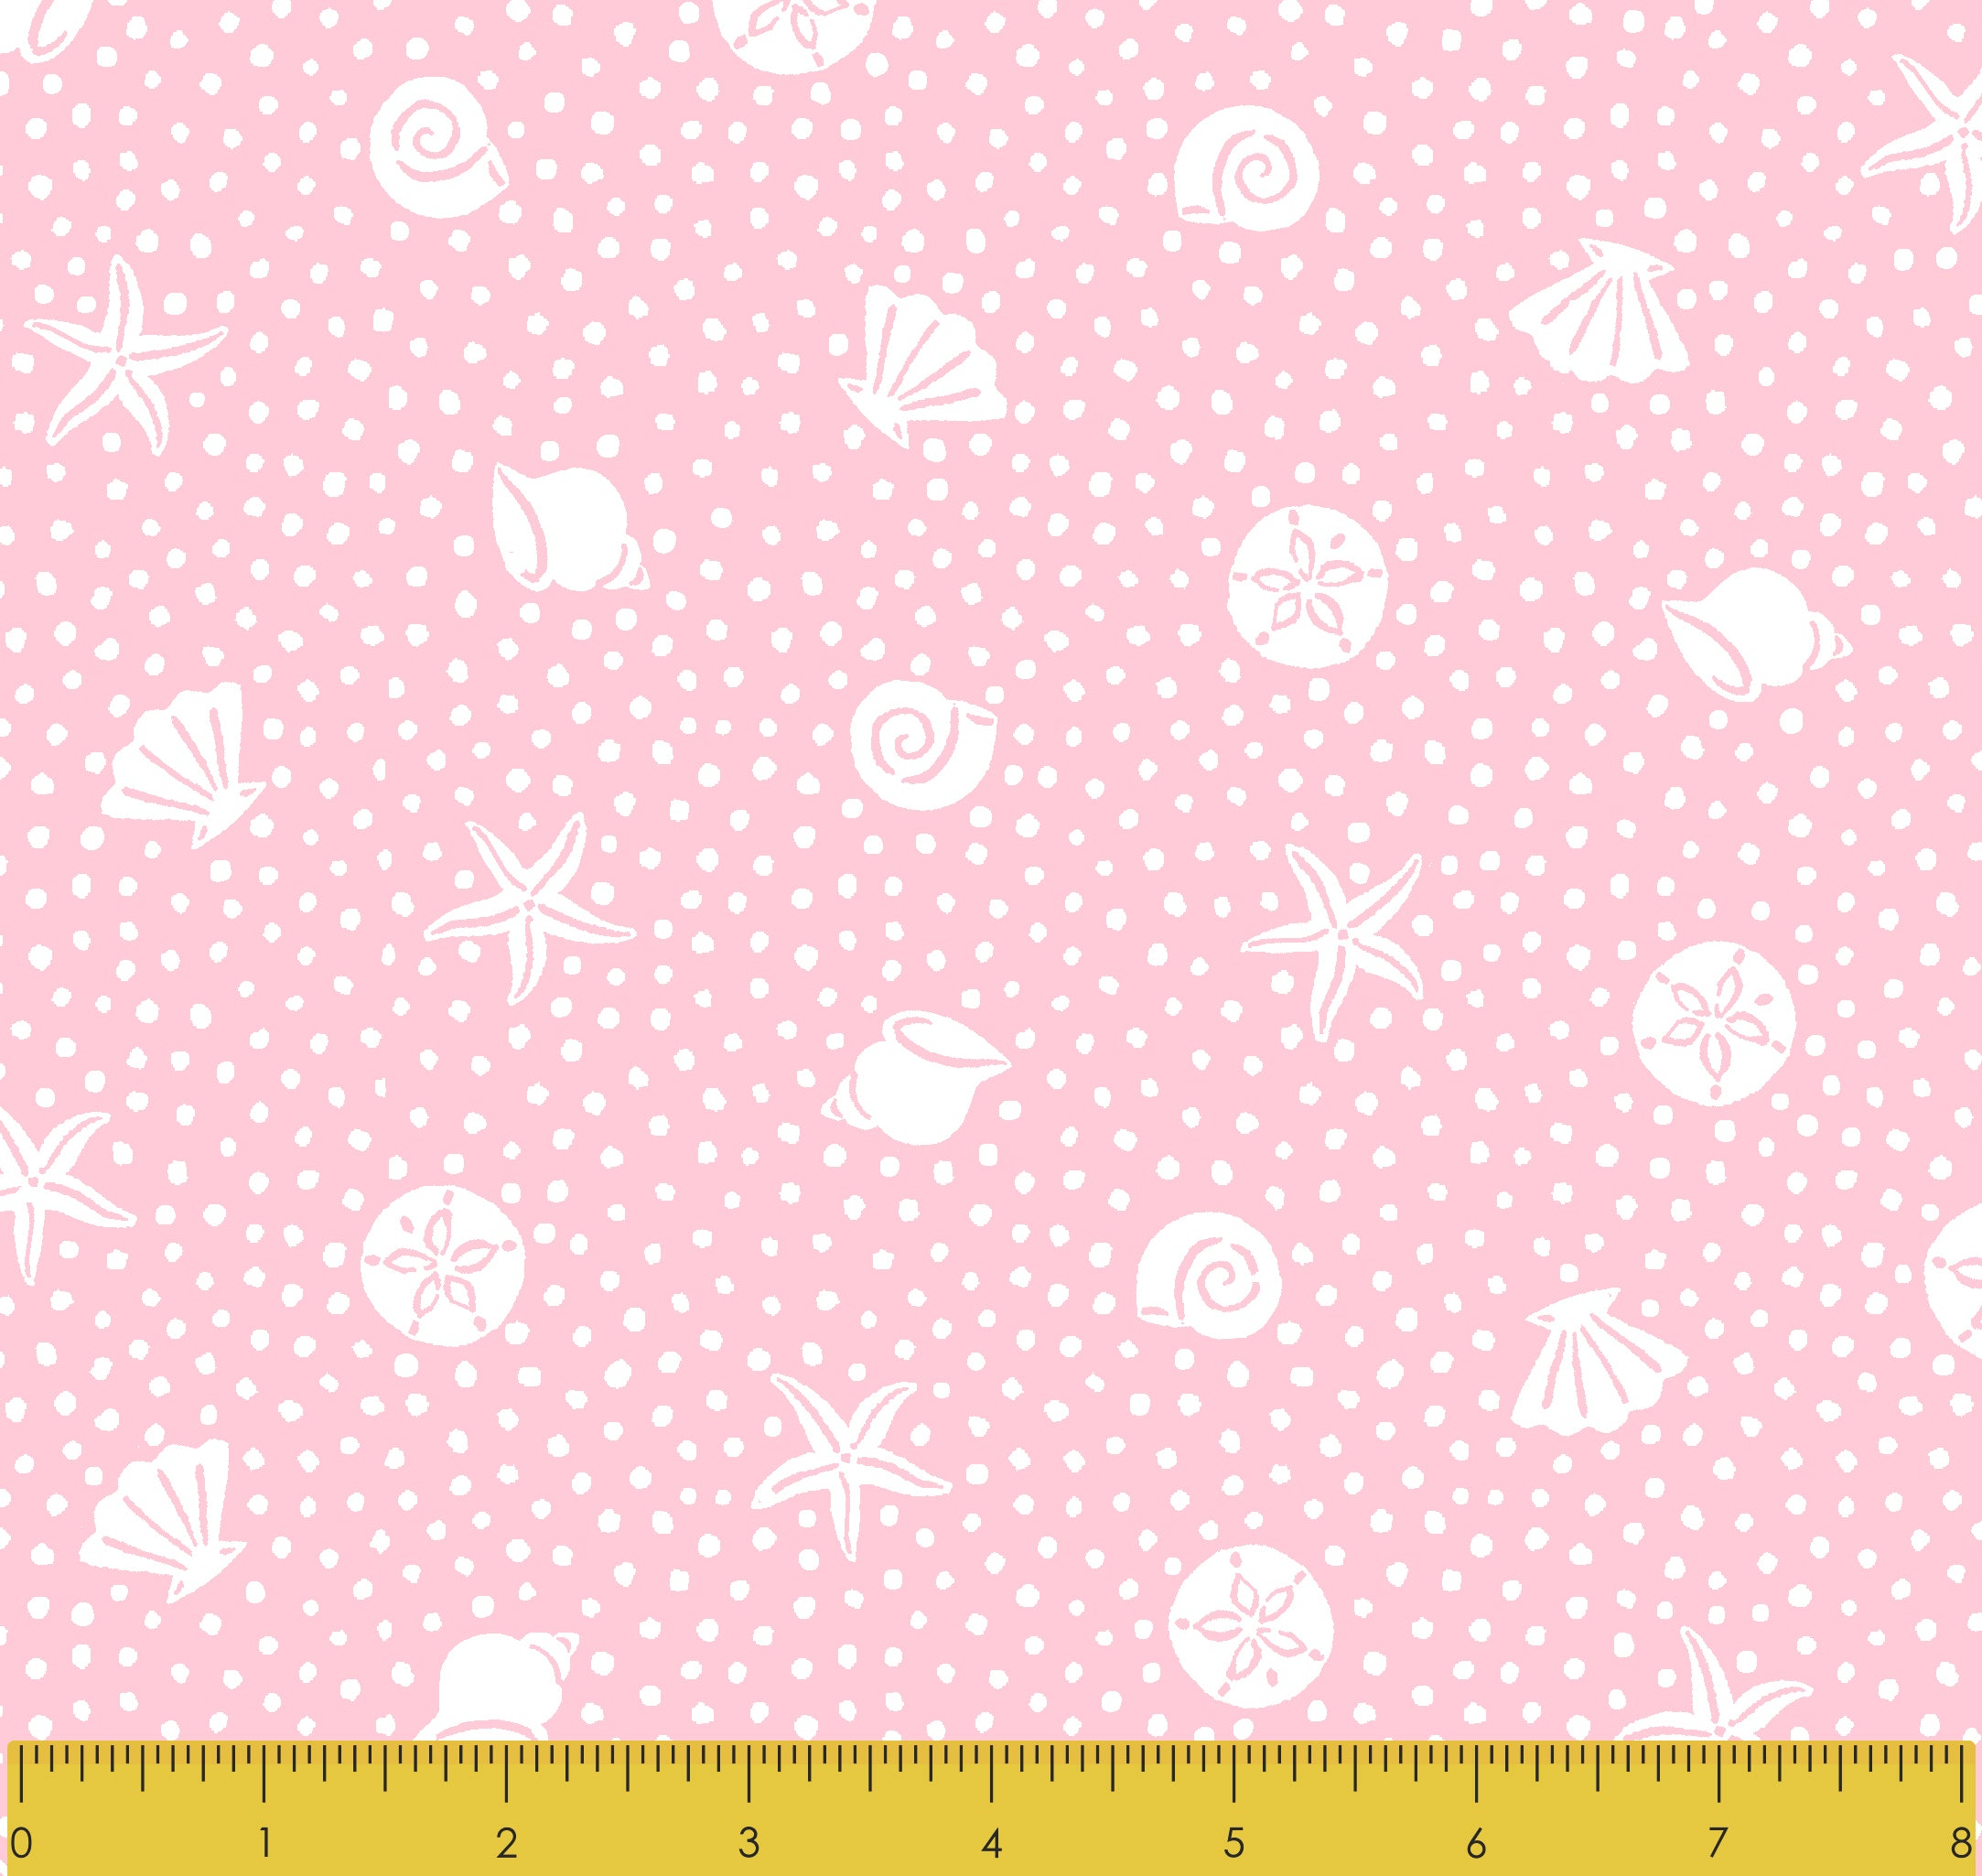 Stitch & Sparkle Fabrics, Under The Sea, Shell And Starfish Pink Cotton Fabrics,  Quilt, Crafts, Sewing, Cut By The Yard